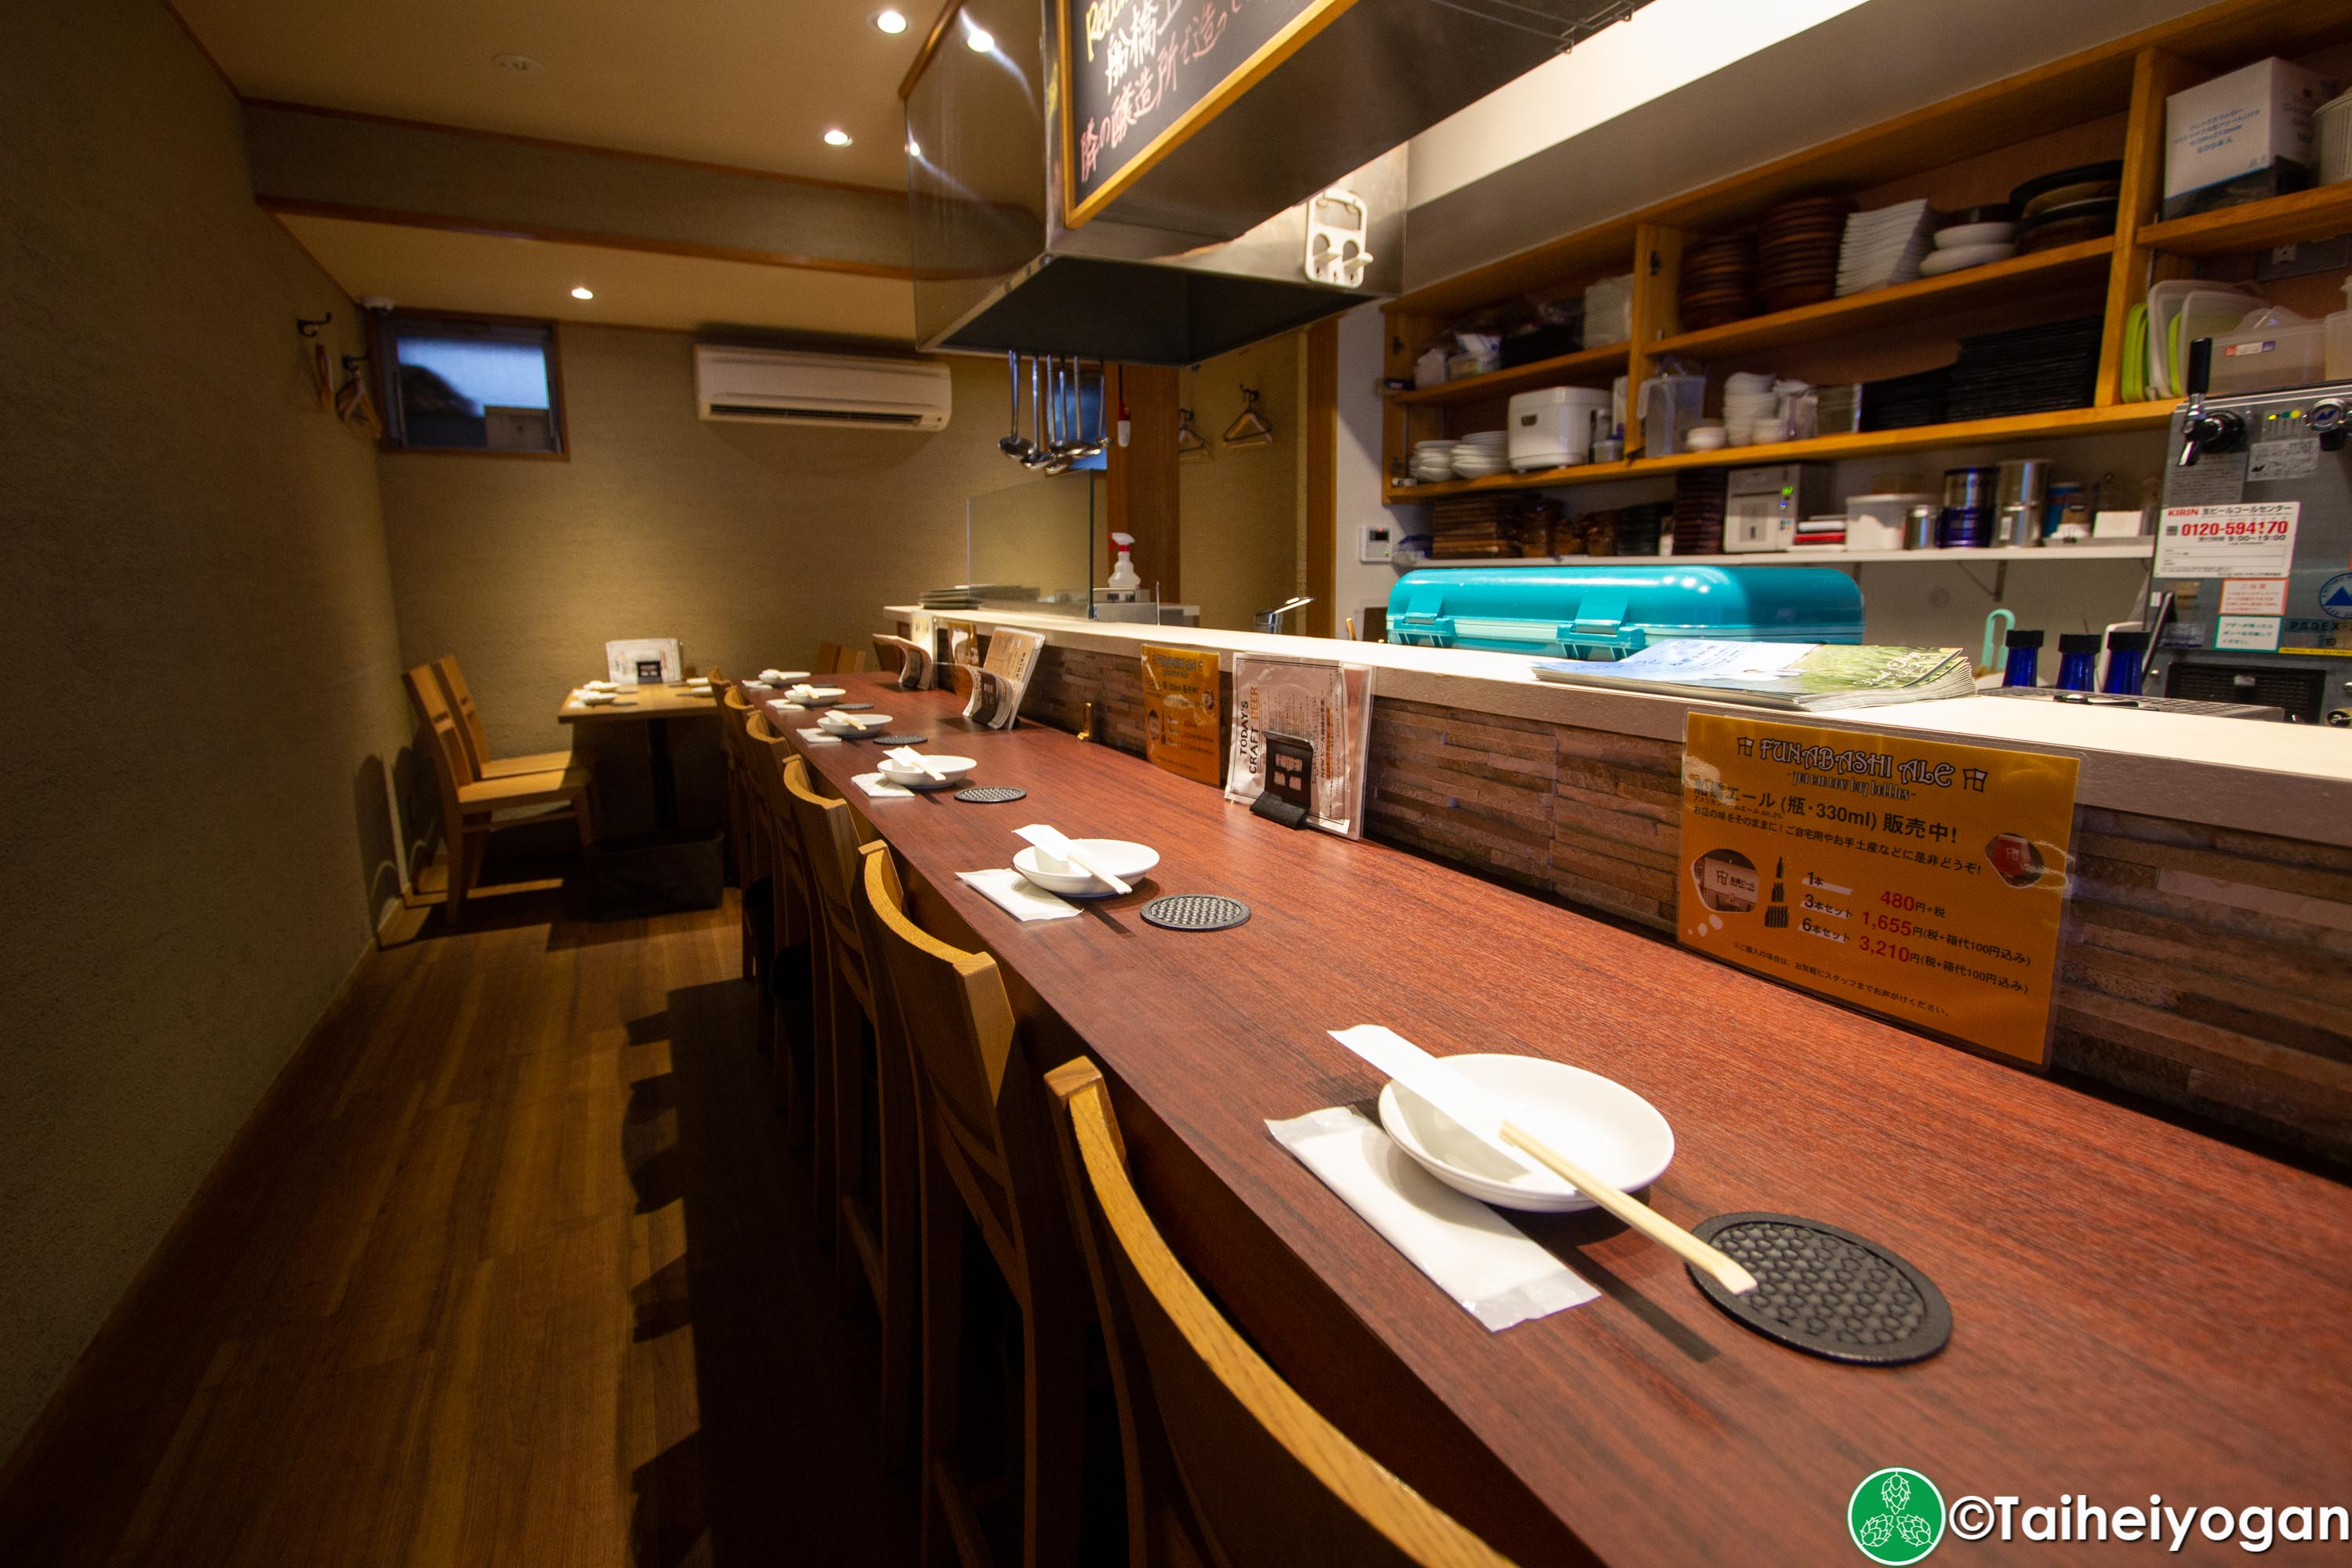 Funabashi Beer - 船橋ビール醸造所 - Interior - Bar Counter